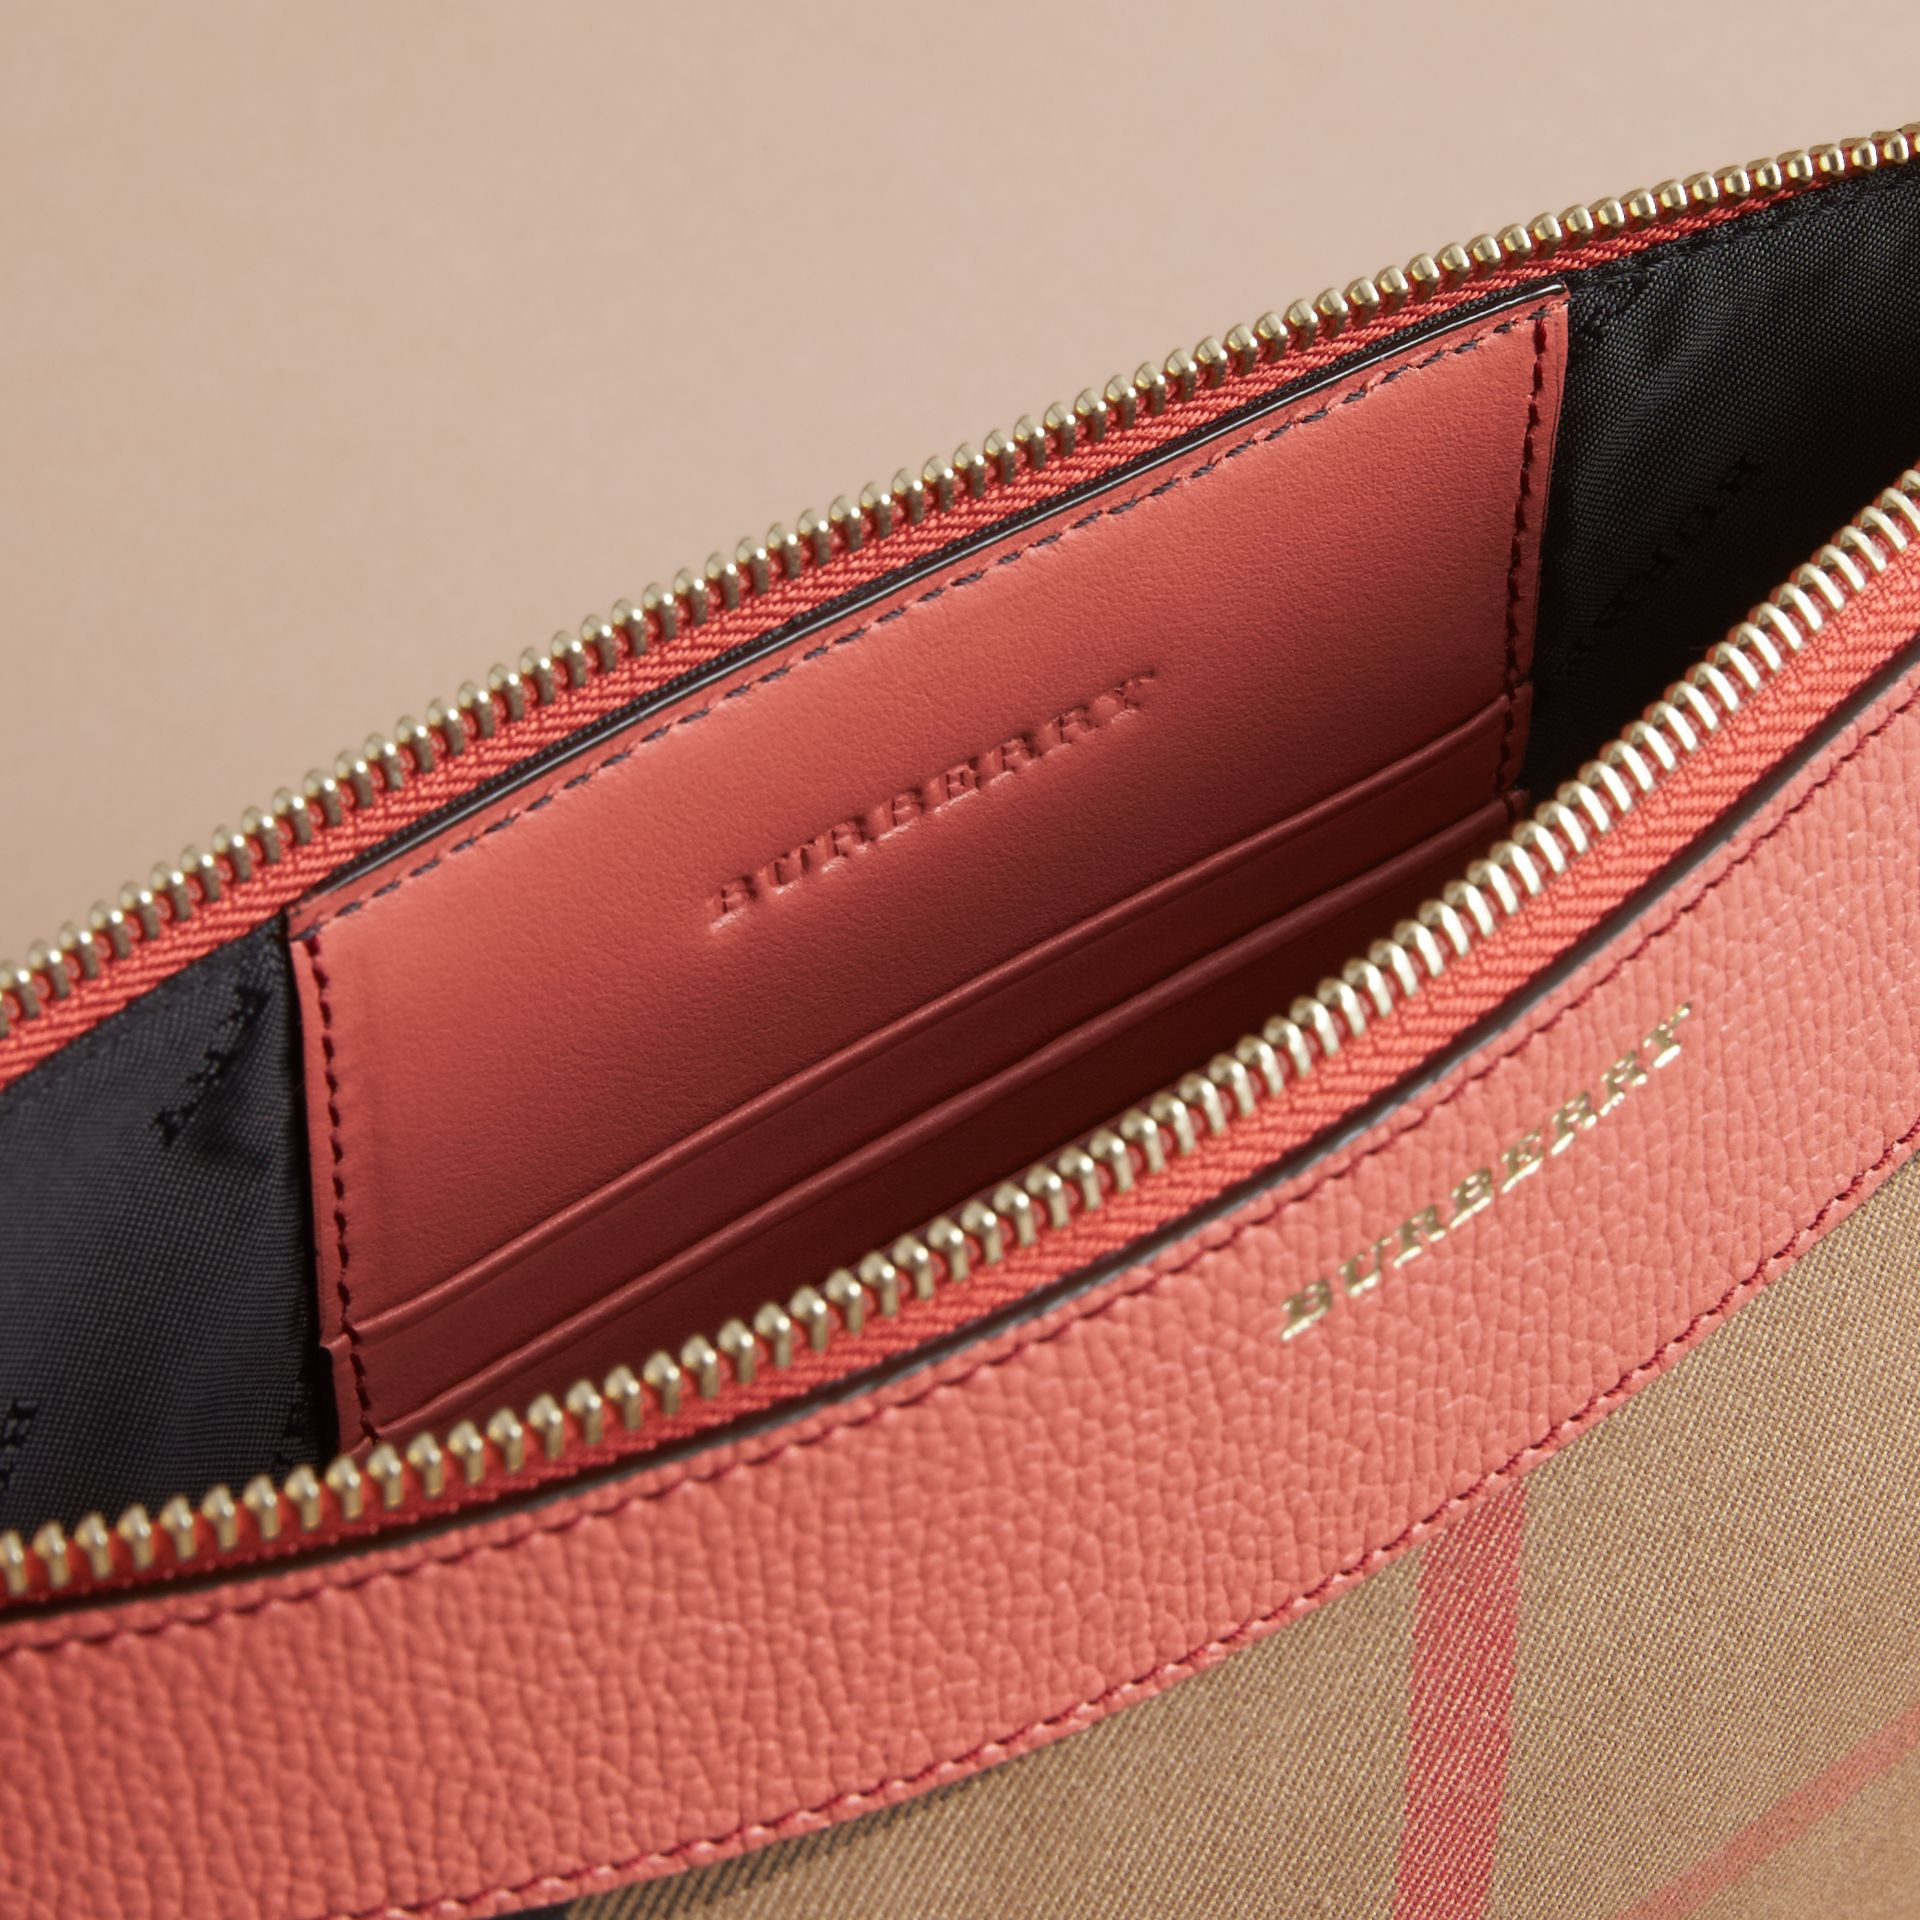 House Check and Leather Clutch Bag in Cinnamon Red - Women | Burberry - gallery image 6